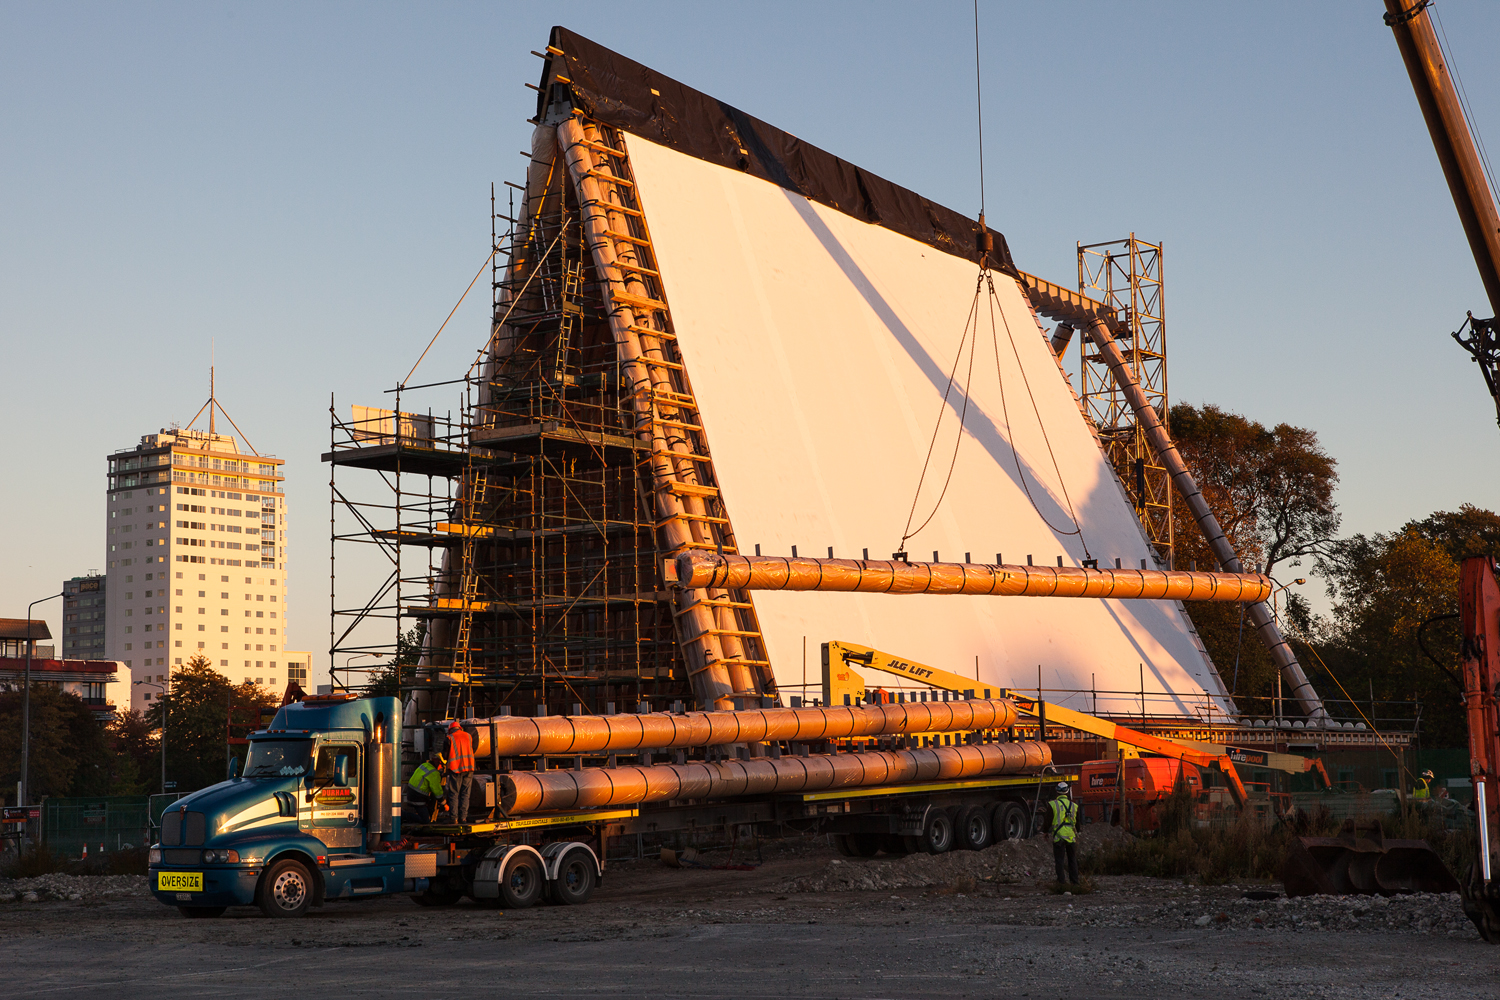 The 20-foot long cardboard tubes arrive by truck